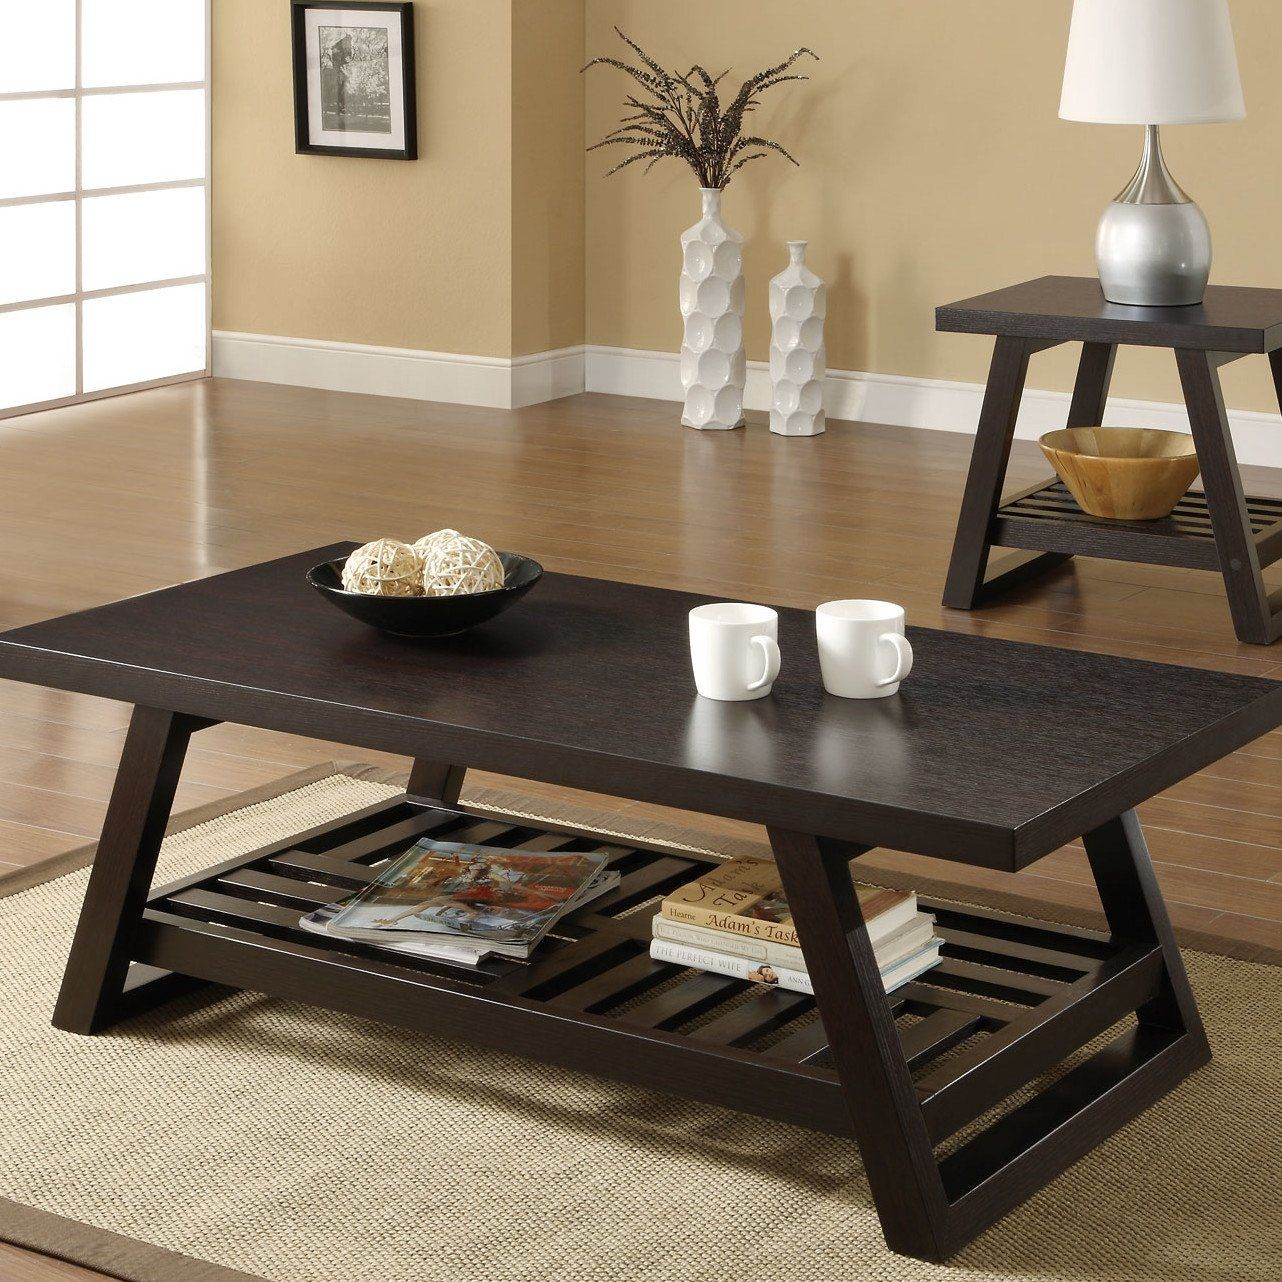 Best Contemporary Coffee Table With Slatted Bottom Shelf In 640 x 480